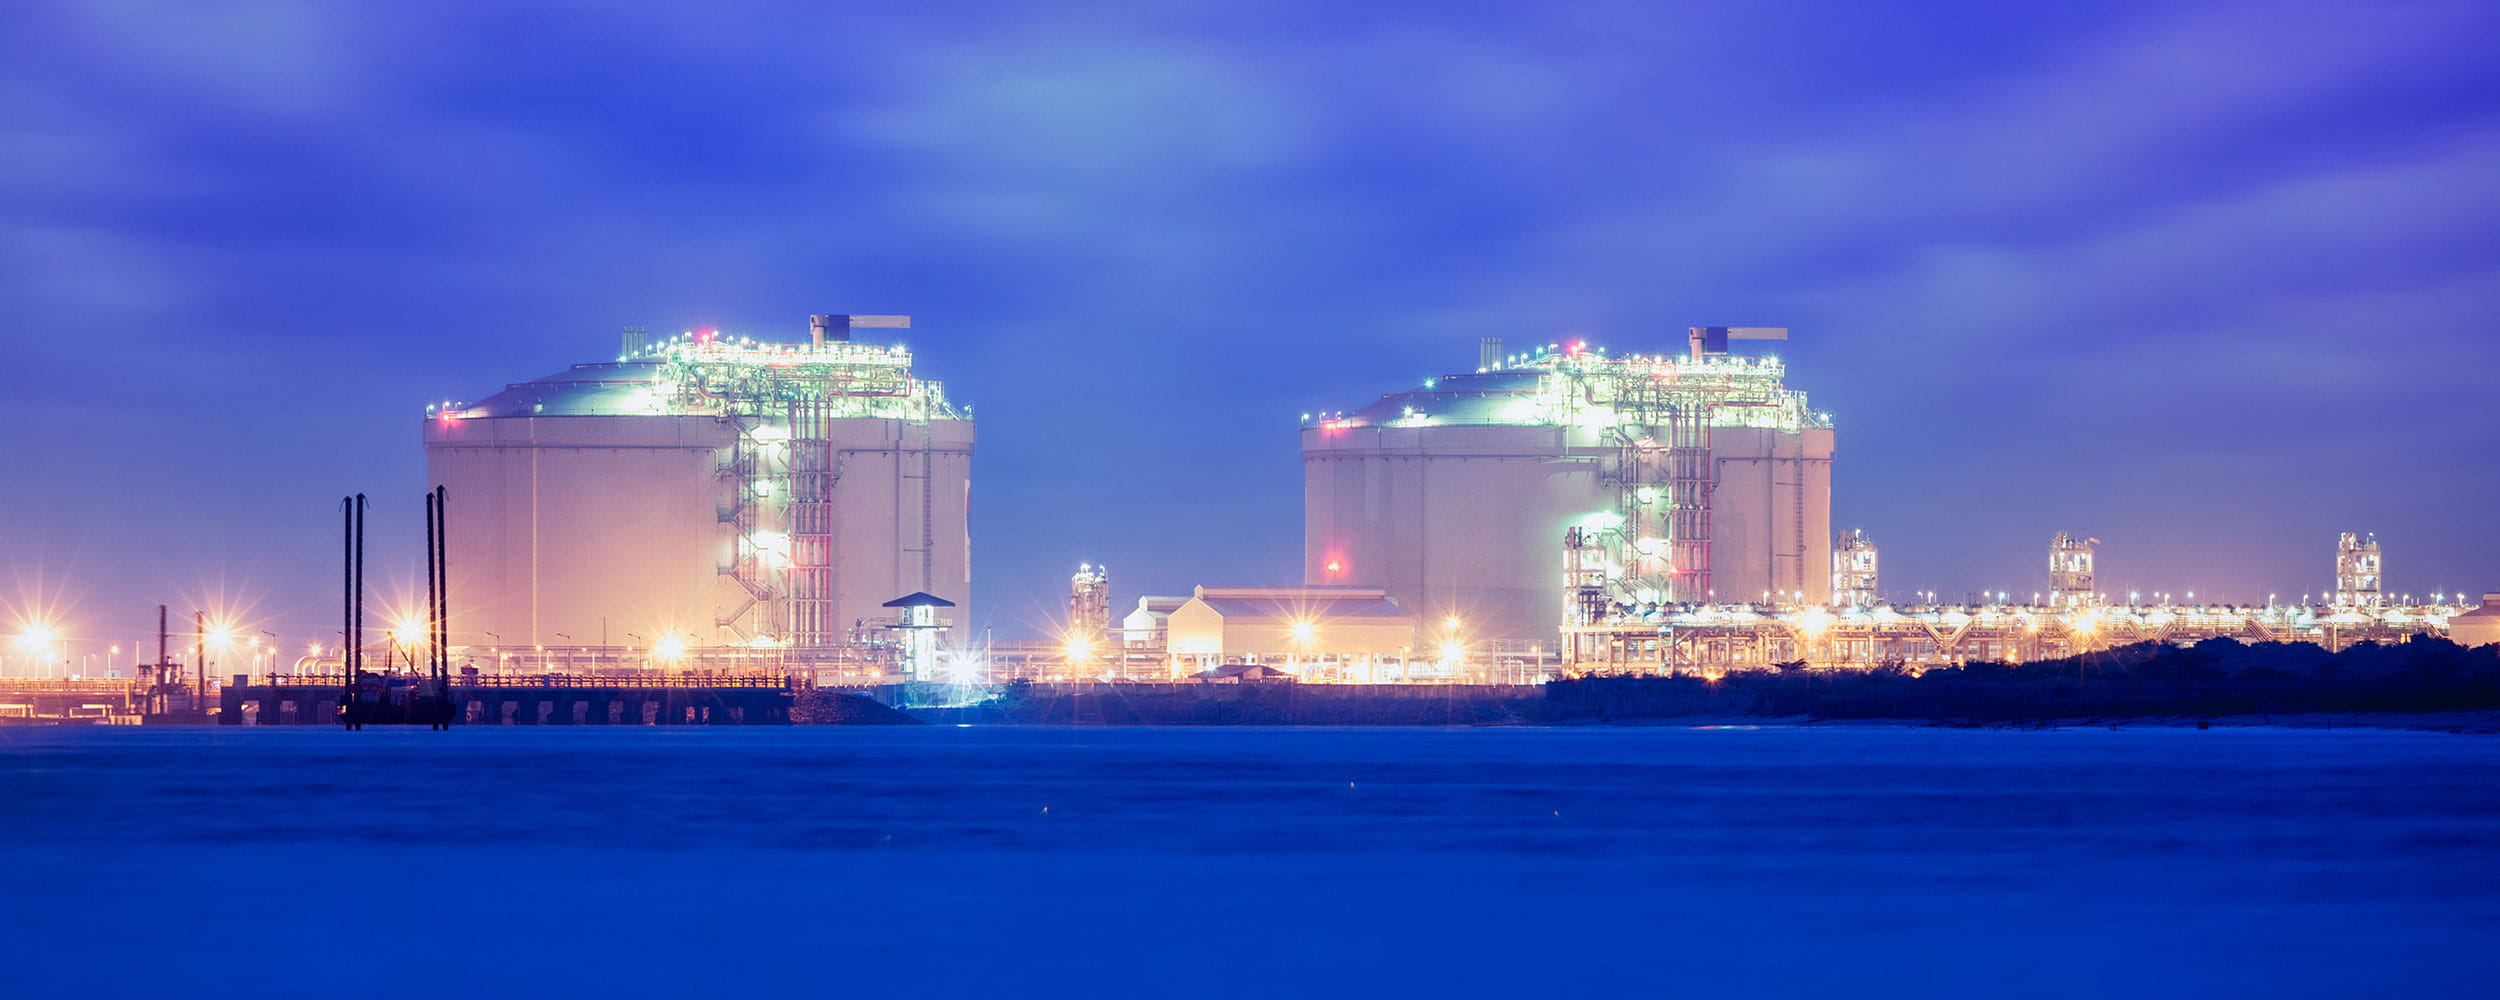 Night view of an LNG facility